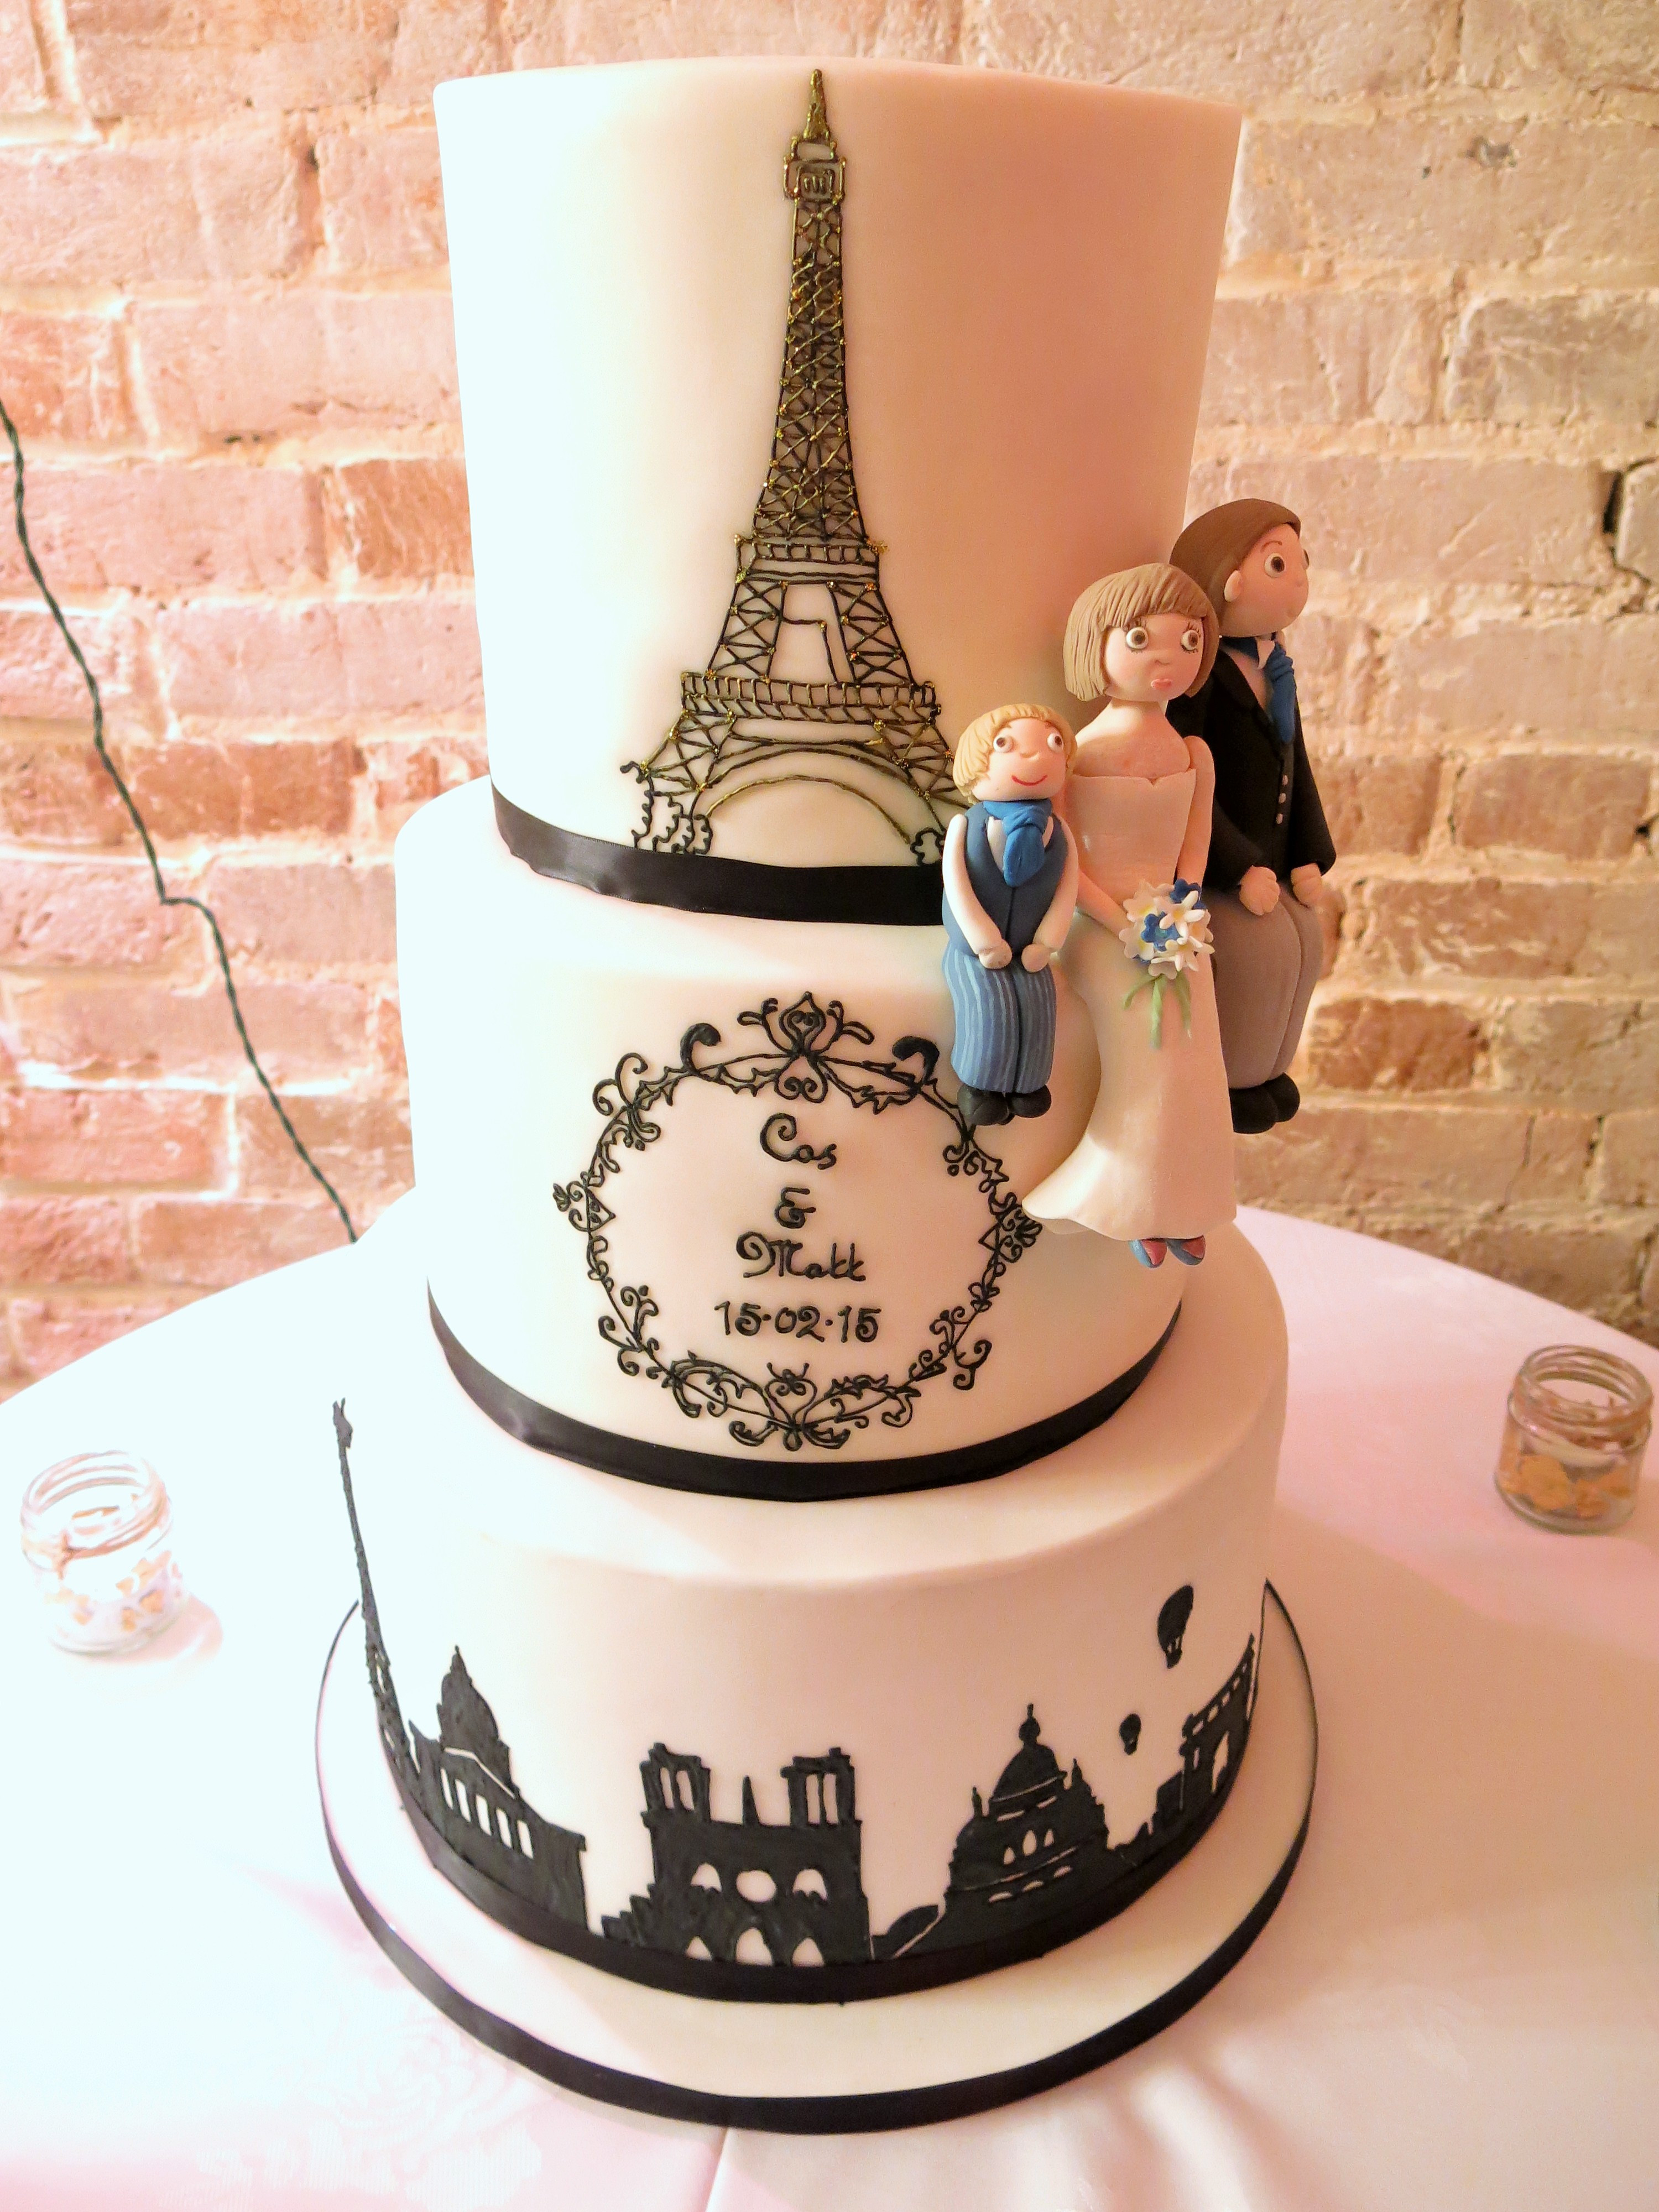 Paris Wedding Cakes  Cakery News & Blog Cakes Made In Norfolk